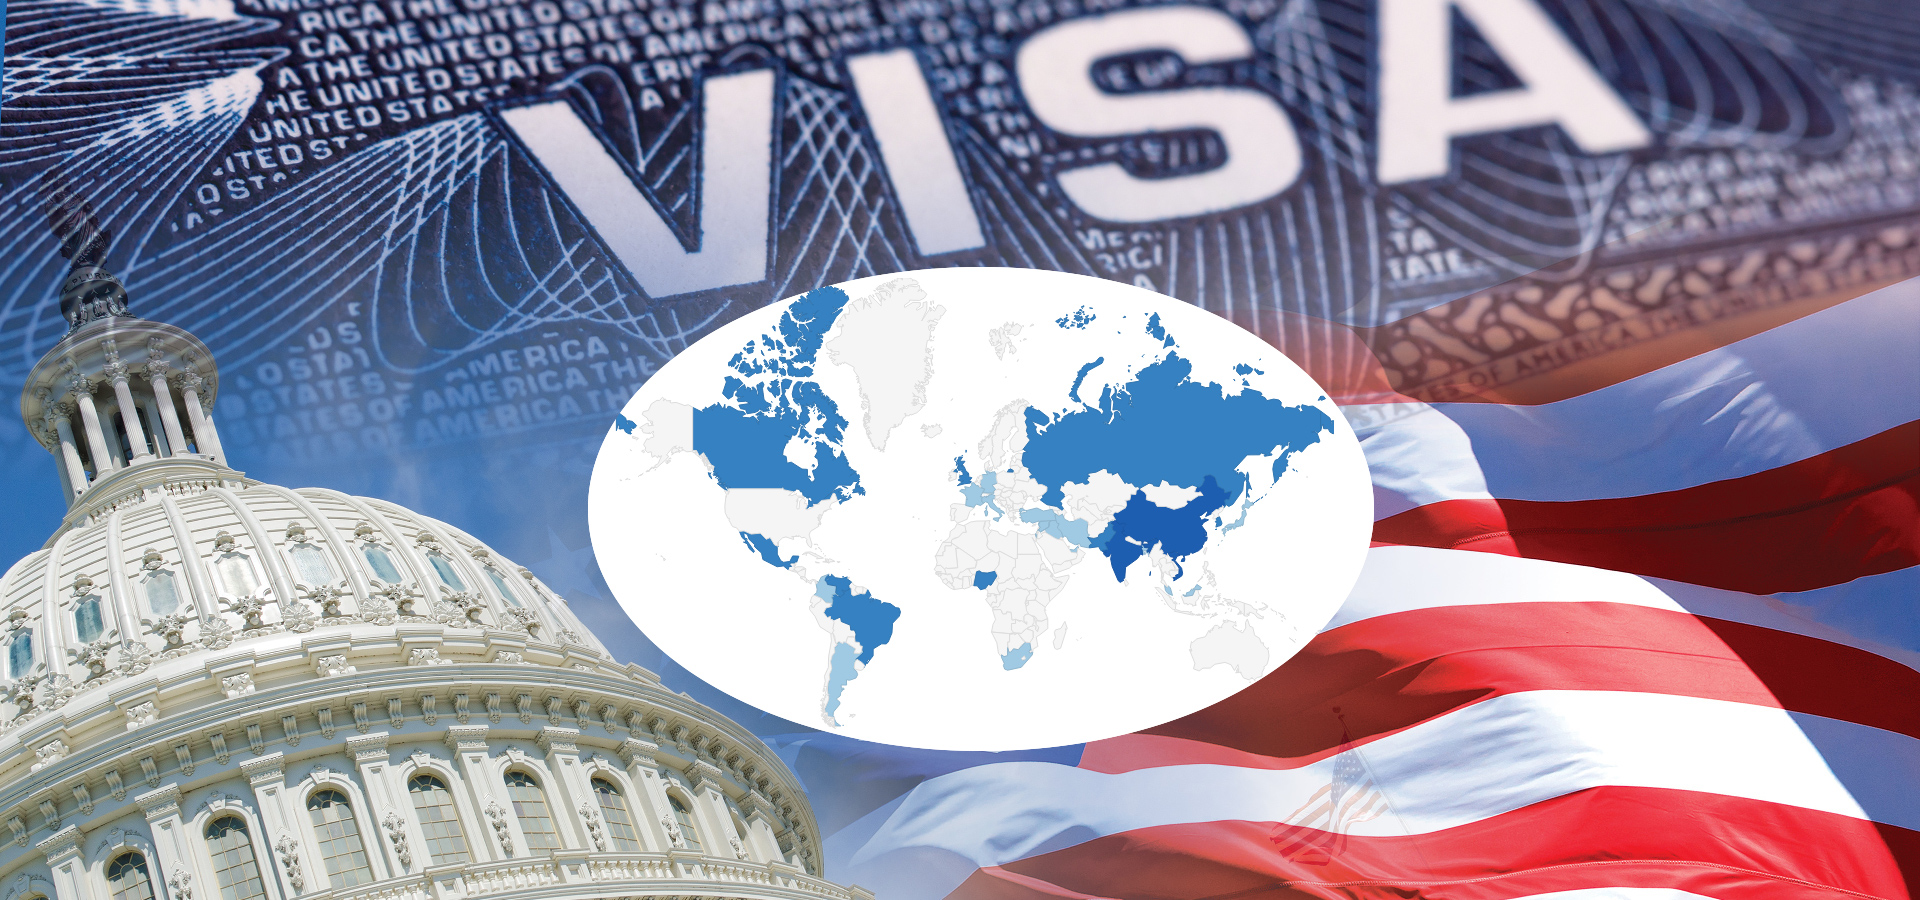 EB-5 Visas per country in 2018: the numbers | LCR Capital Partners